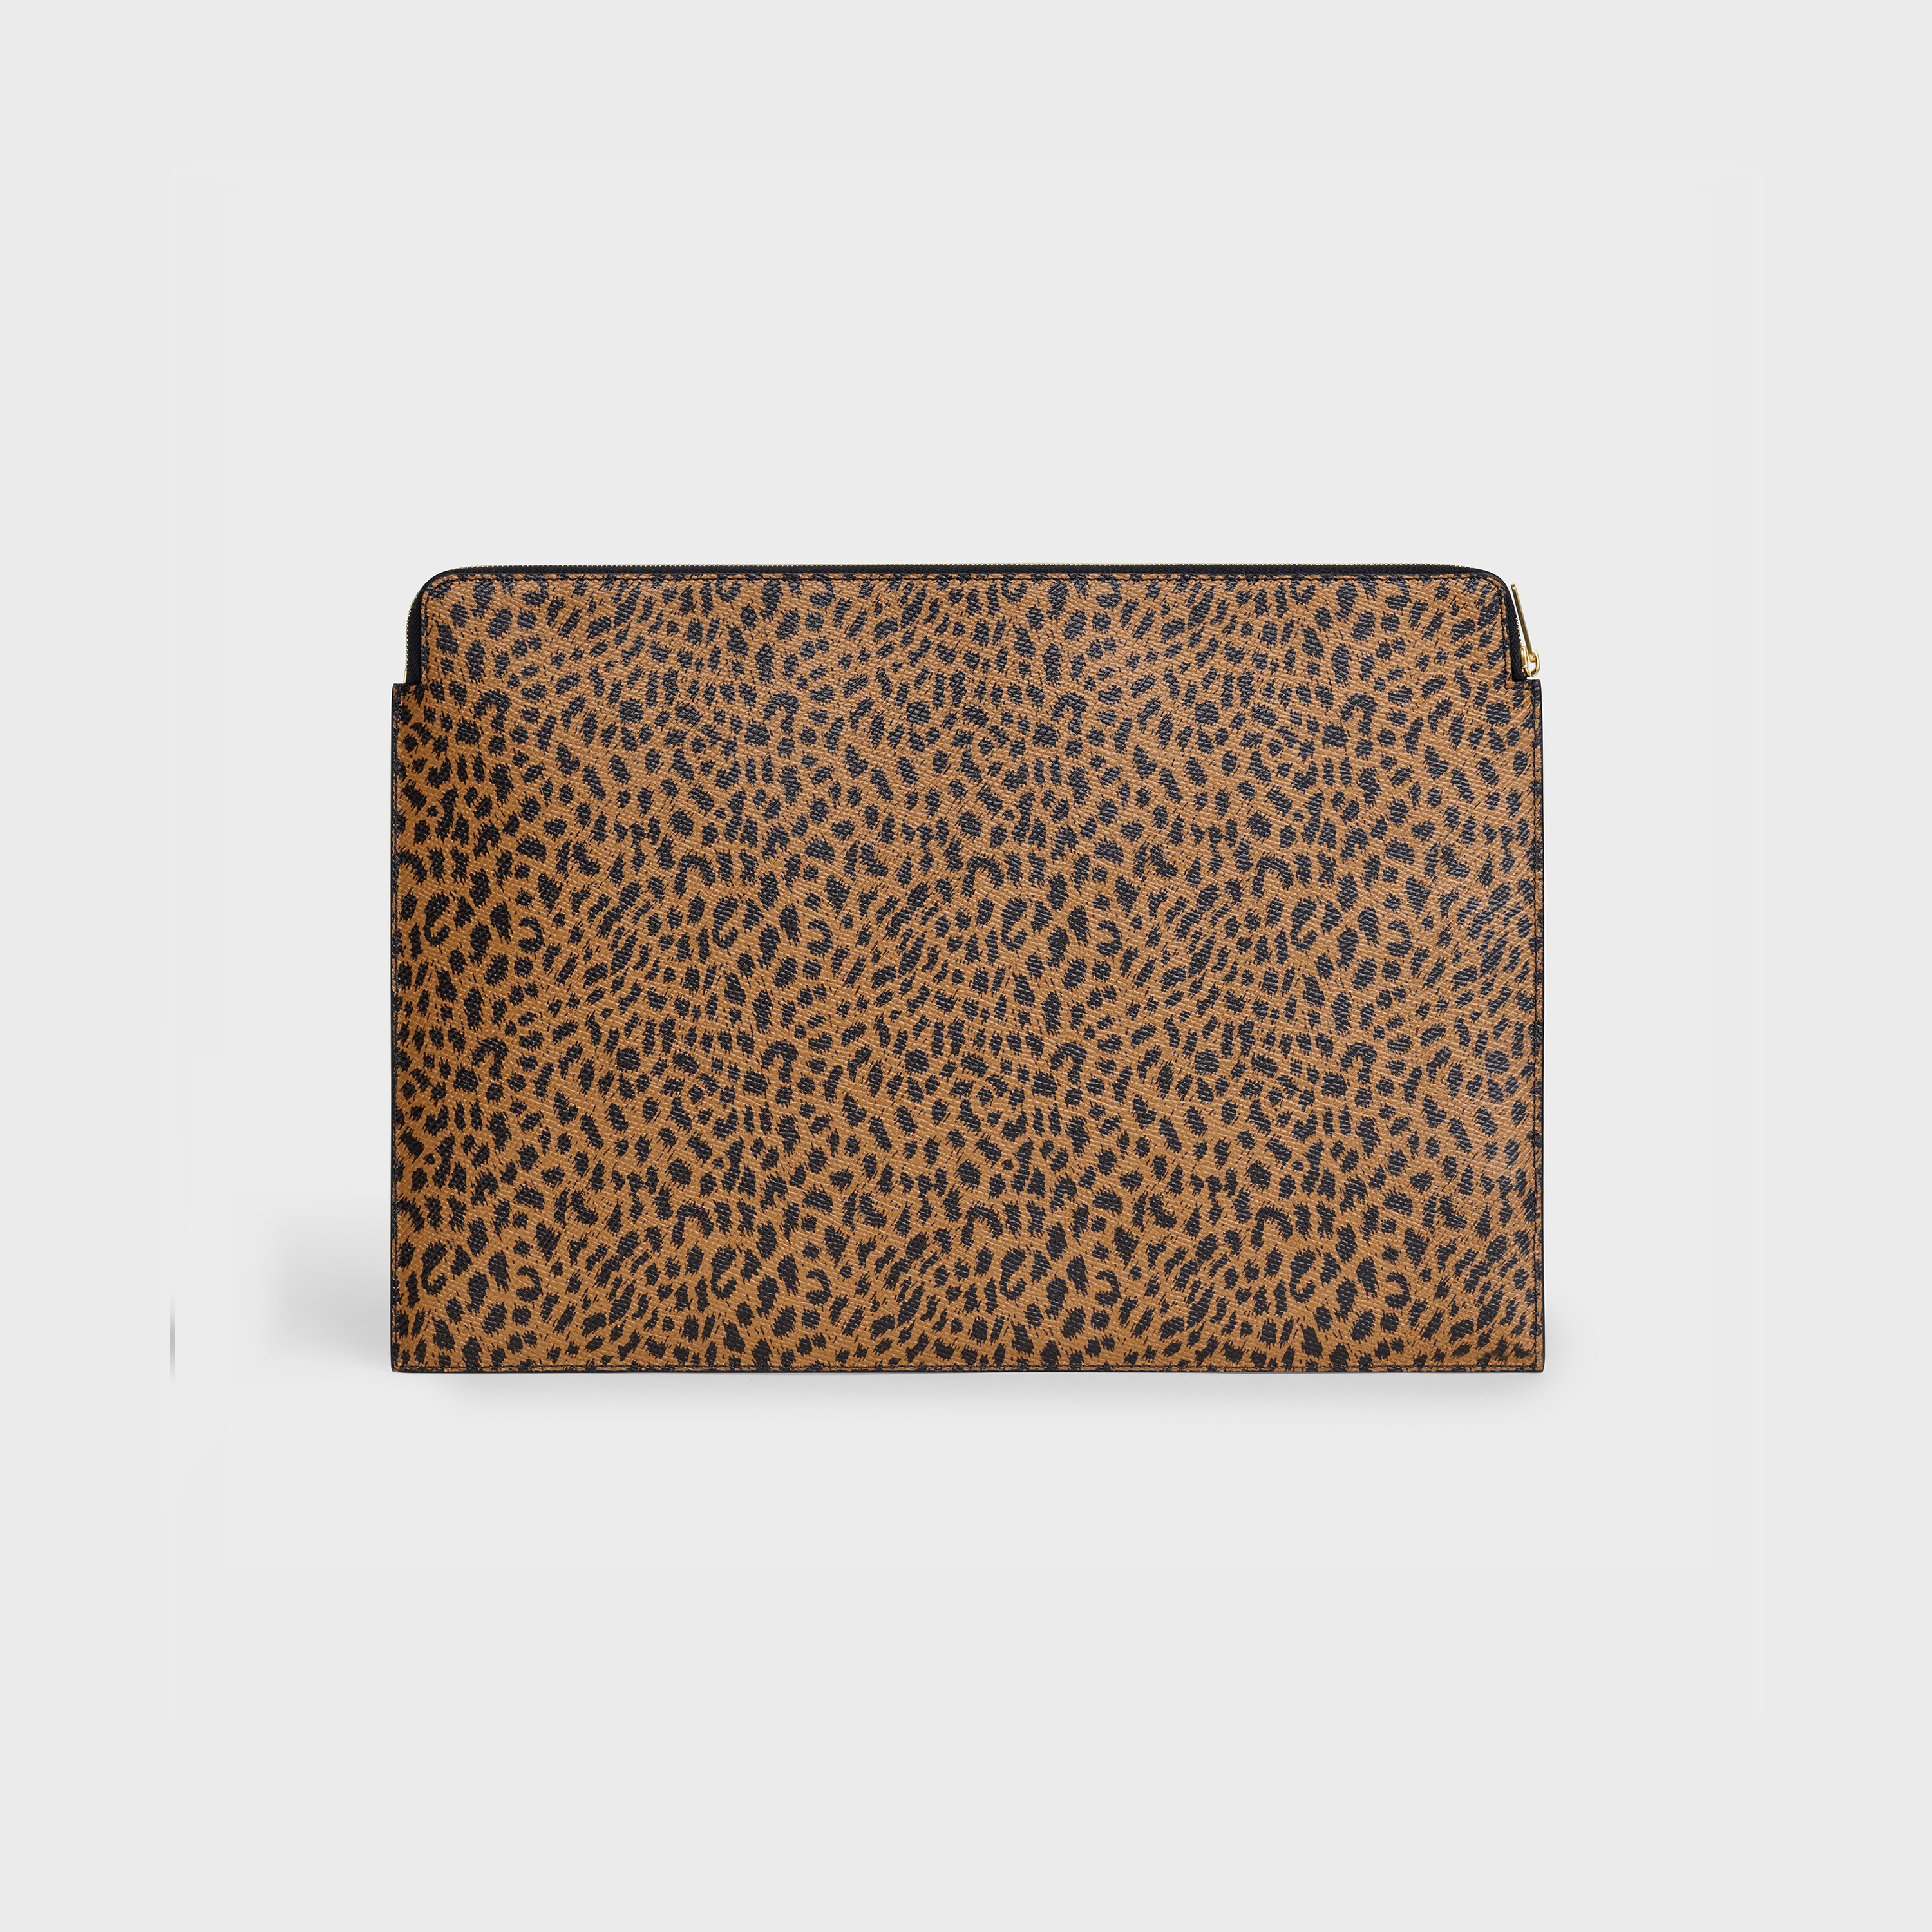 Document holder in Grained Calfskin with Leopard Print | CELINE